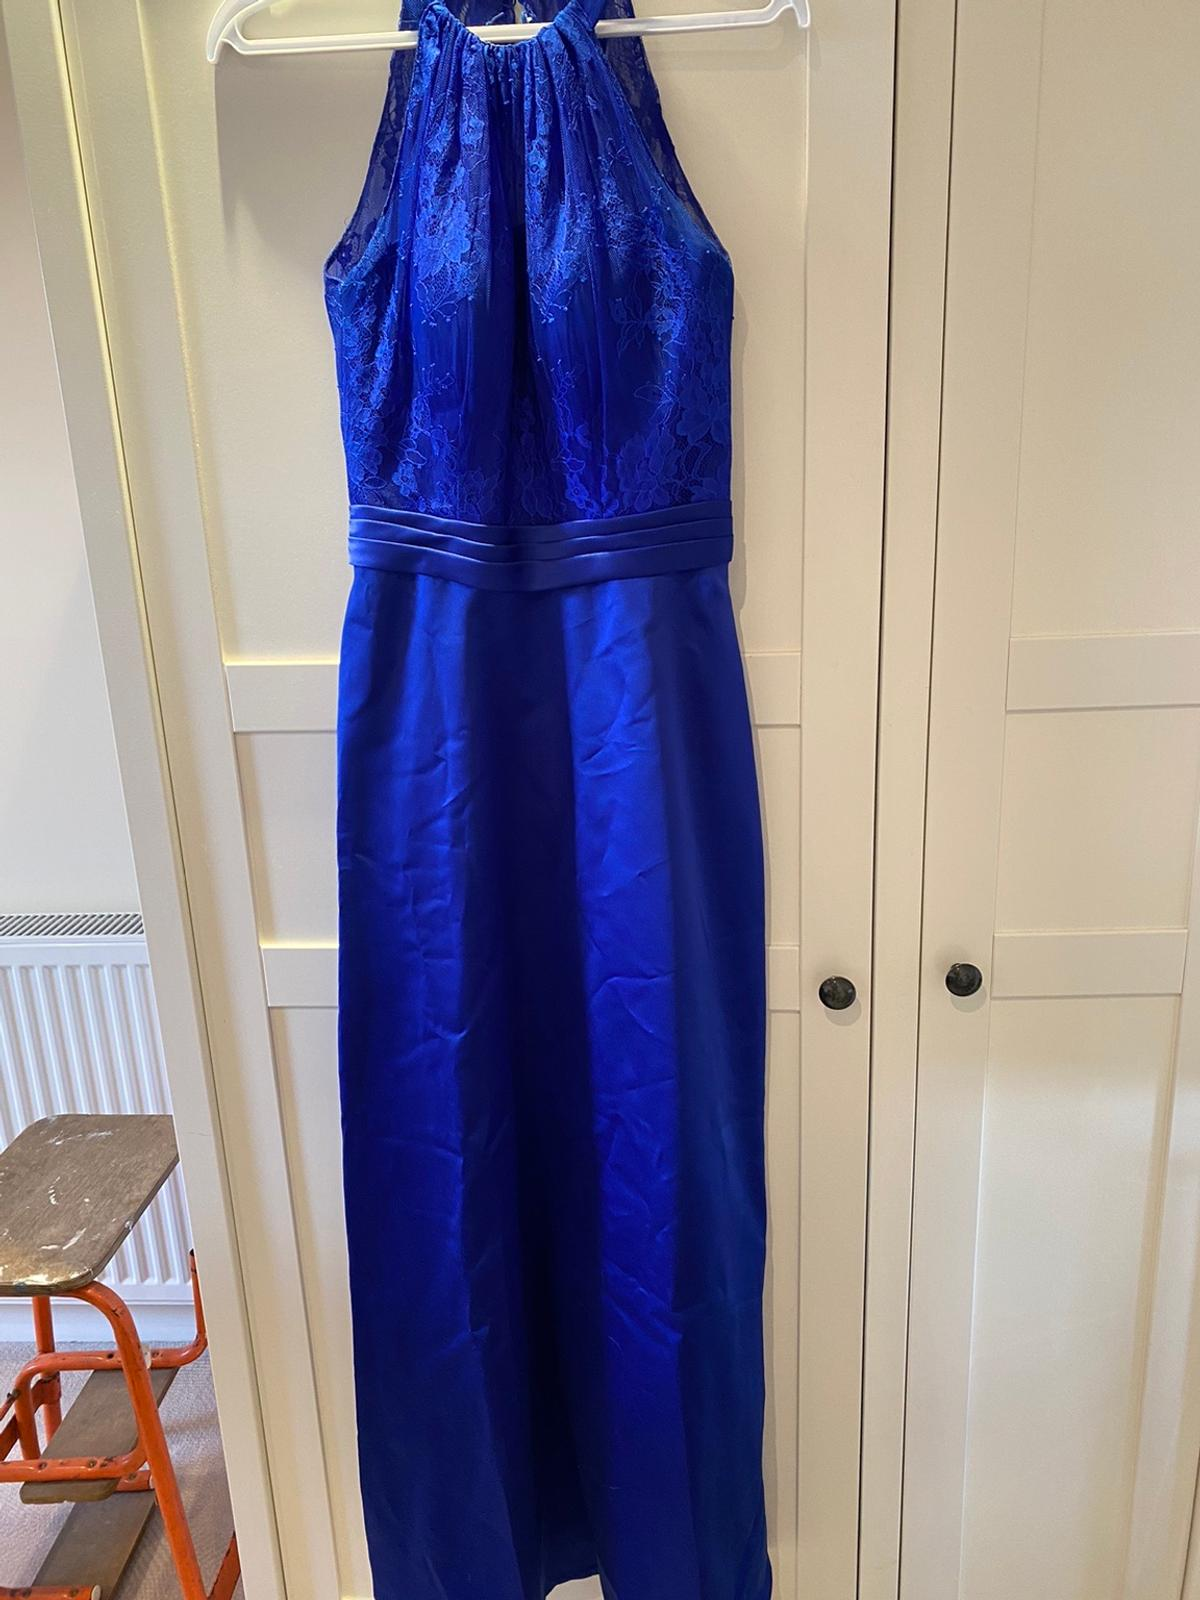 Beautiful royal blue bridesmaids dress  Worn once  Will need dry cleaning  Collection only from Worksop